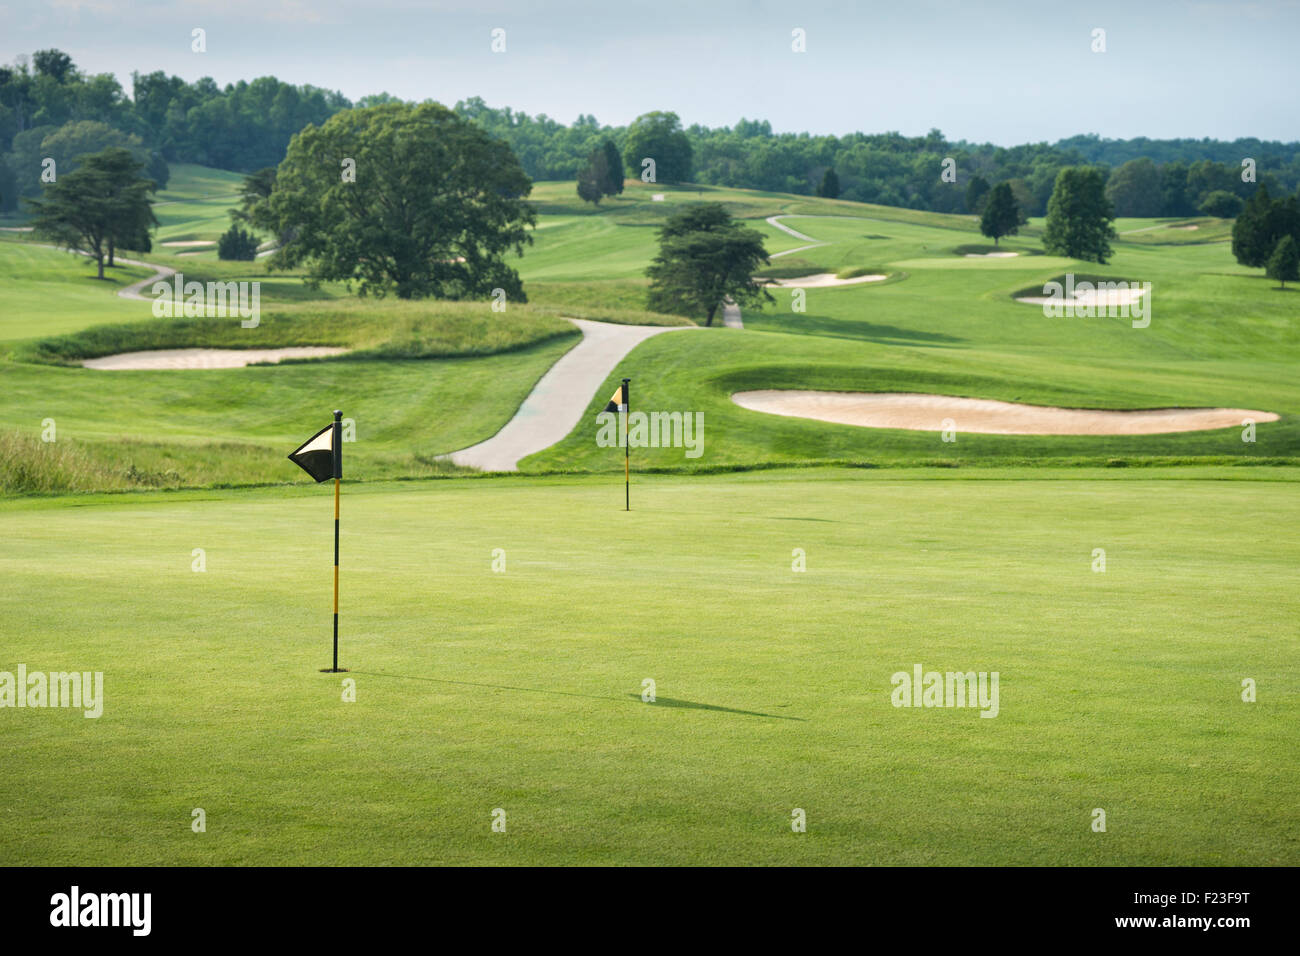 Hagan golf course, French Lick, IN, USA - Stock Image